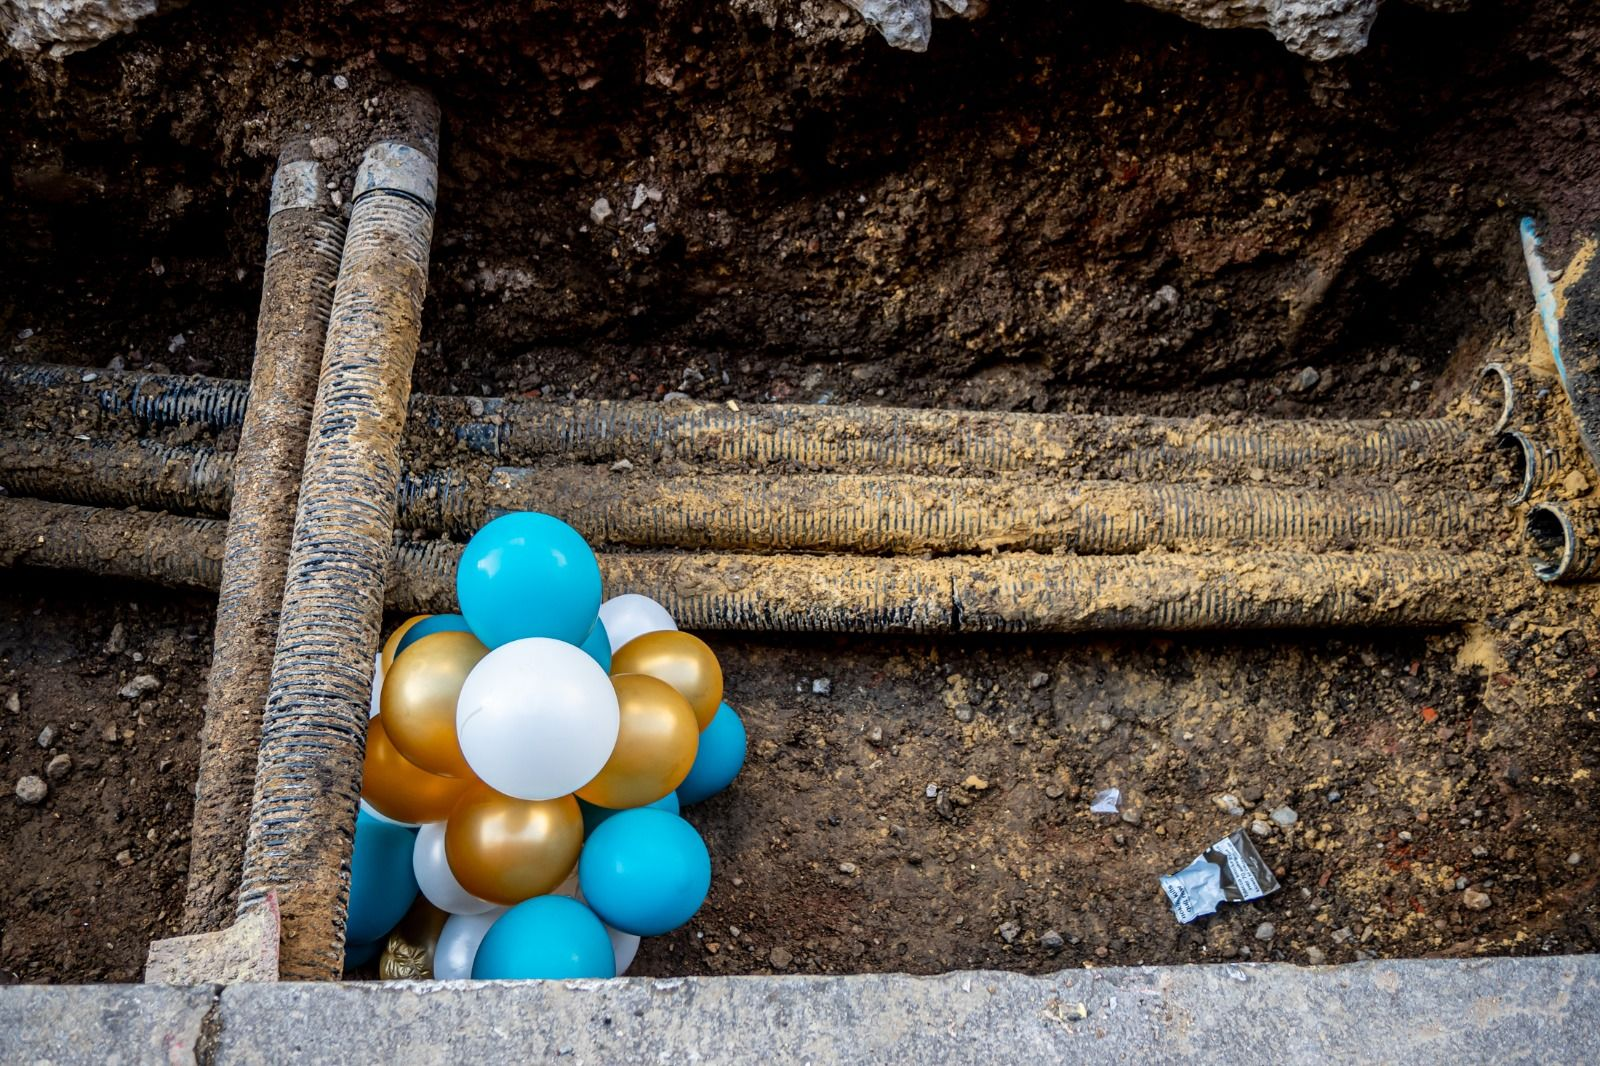 Candid street photography of colourful balloons in a dug trench, on a street in the West End of London.